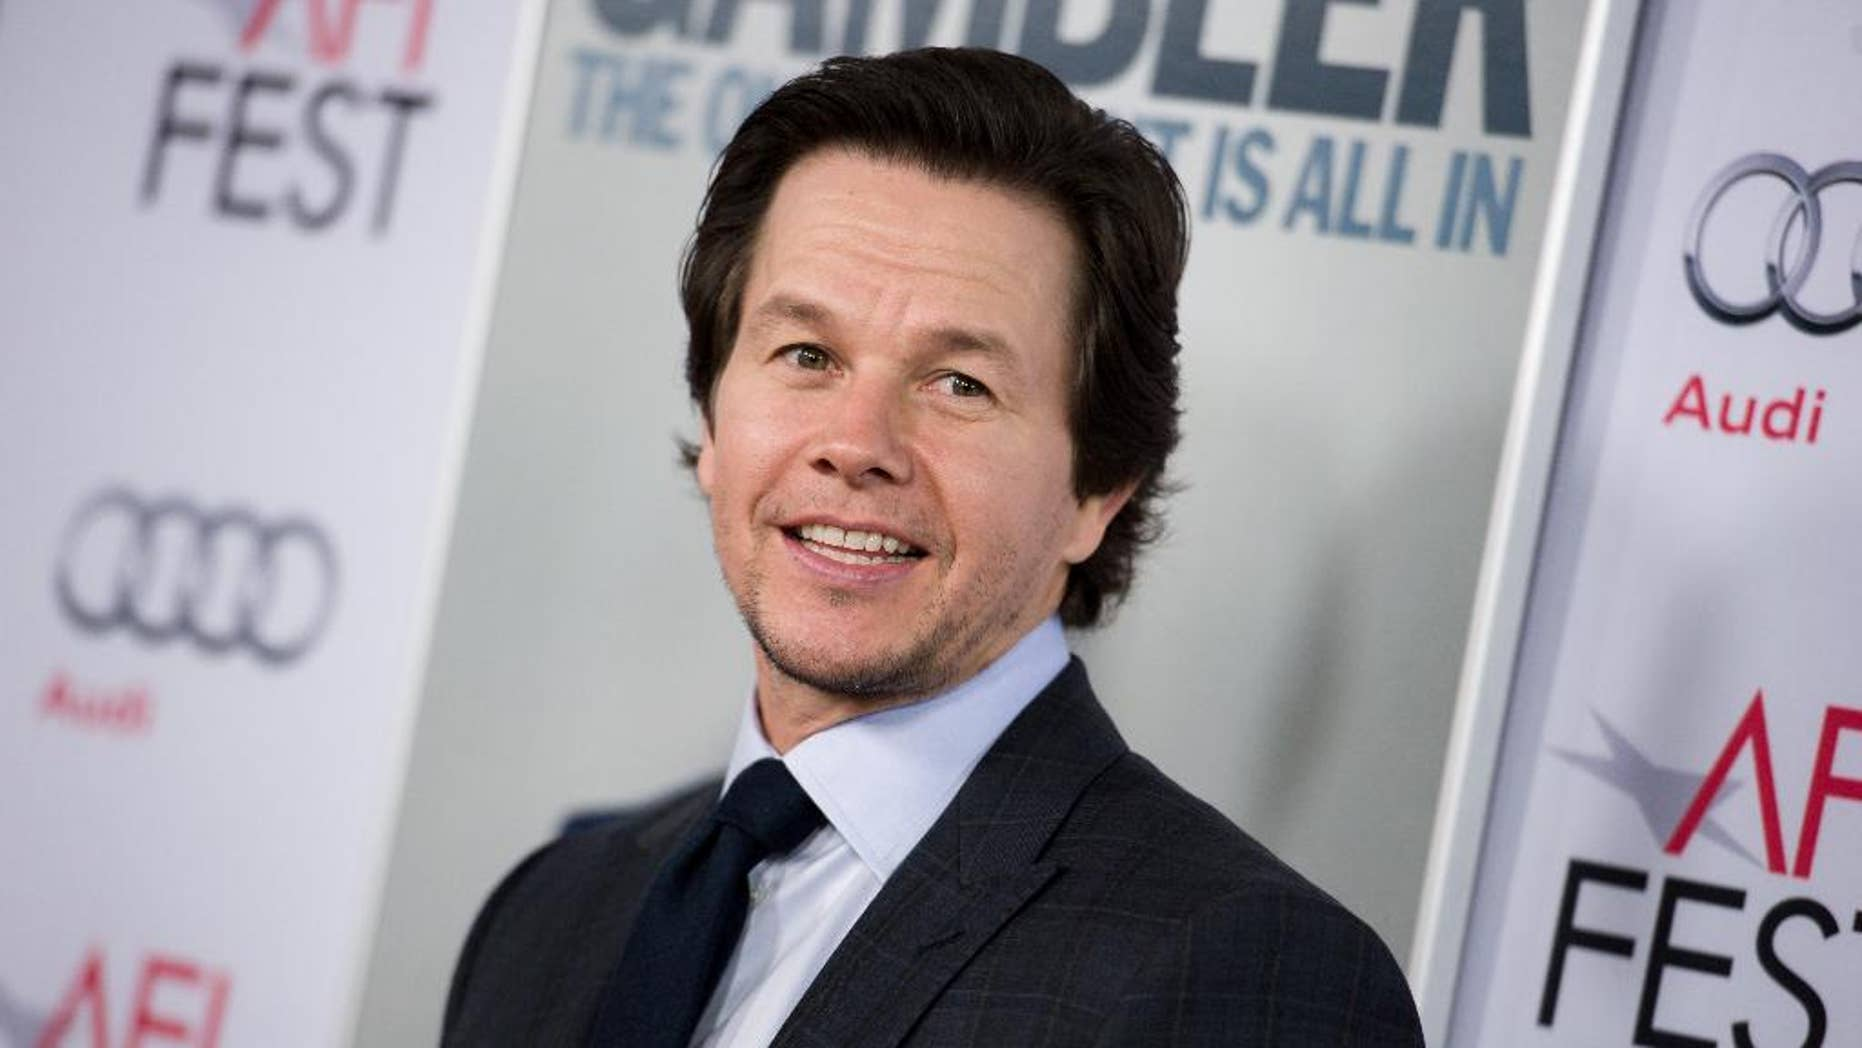 "FILE - In this Nov. 10, 2014 file photo, Mark Wahlberg arrives at the 2014 AFI Fest - ""The Gambler,"" in Los Angeles. Wahlberg, along with Scott Stuber, Dylan Clark, Stephen Levinson and Michael Radutzky, will produce ""Patriots' Day,"" a film chronicling the events surrounding the 2013 Boston Marathon Bombing, based on the first-hand account of Boston Police Commissioner Ed Davis. Matt Charman is writing the screenplay and Nicholas Nesbitt will executive produce. (Photo by Richard Shotwell/Invision/AP, File)"